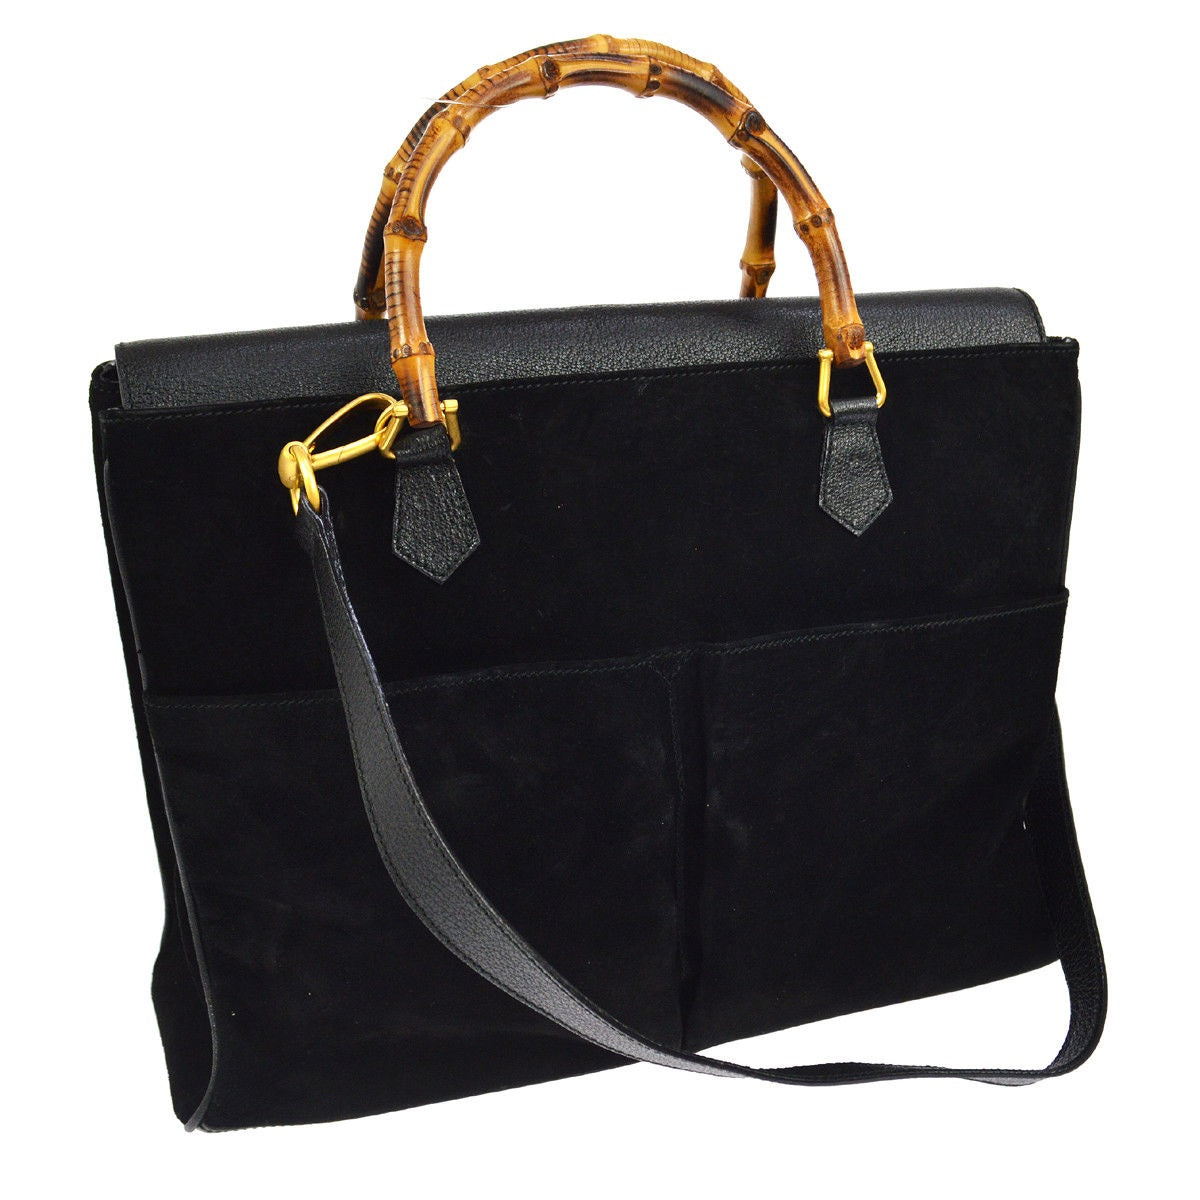 f633dd4d7c Gucci Bamboo Handle 2way Hand Black Suede Leather Vintage Shoulder Bag